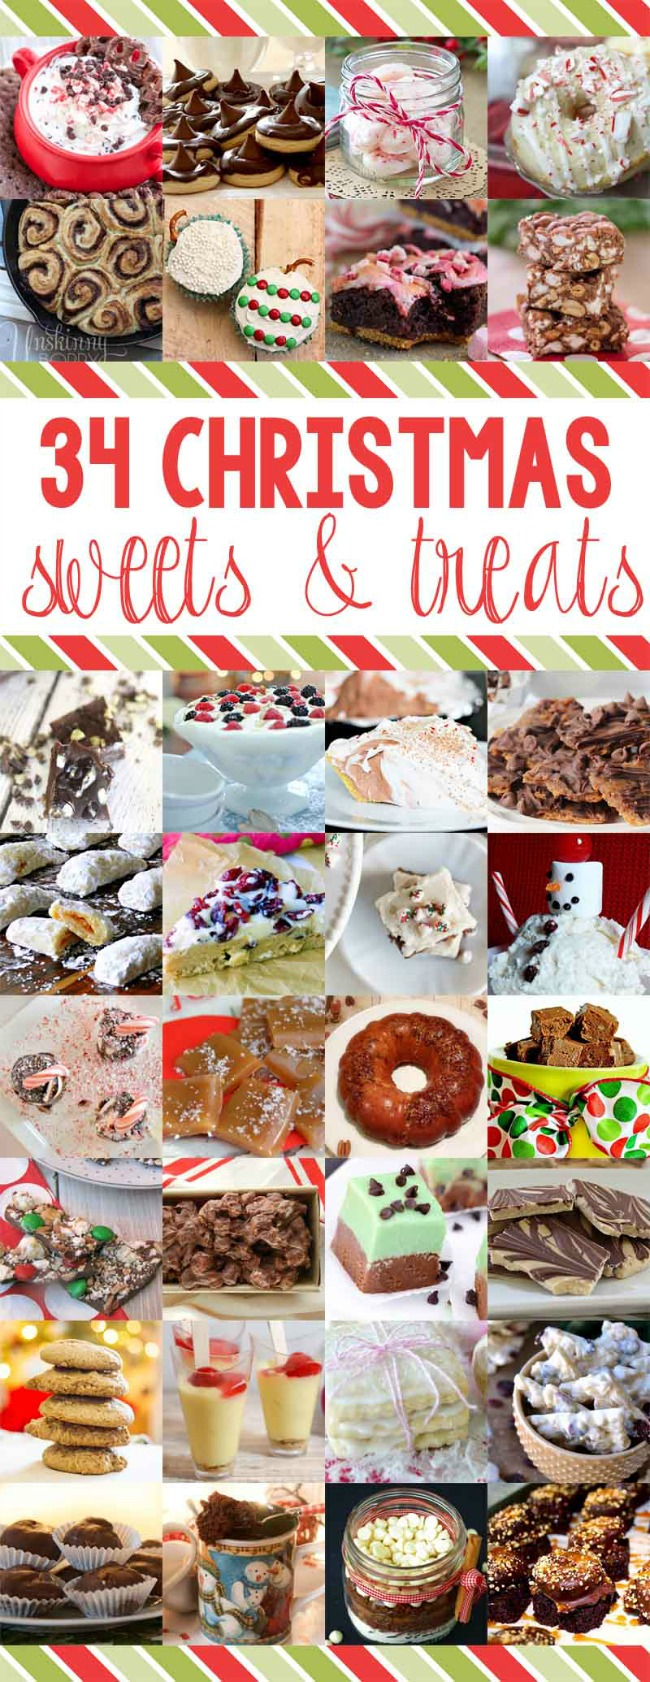 34 Christmas Sweets and Treats | anightowlblog.com